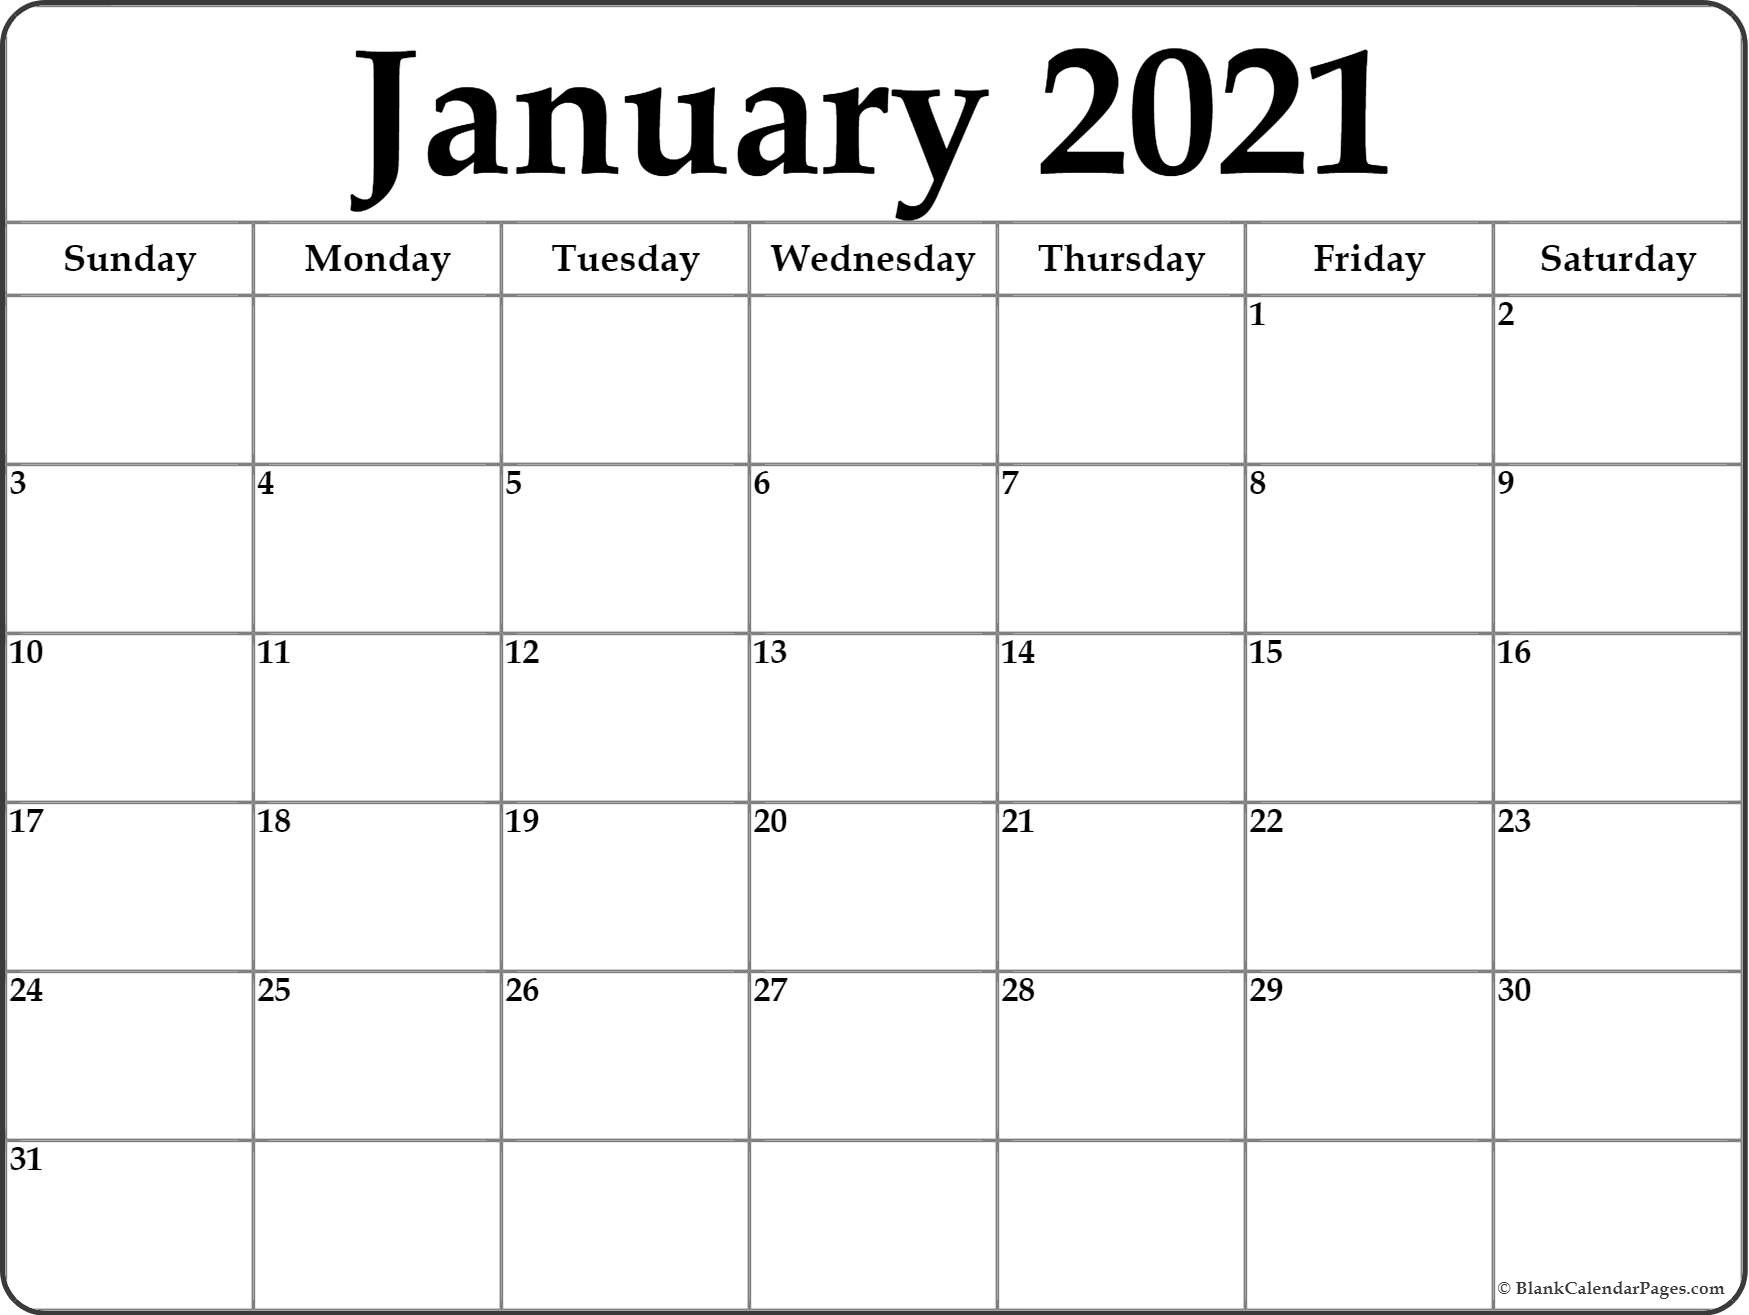 January 2021 Calendar | Free Printable Monthly Calendars-Free Printable Monthly Calendar With Holidays 2021